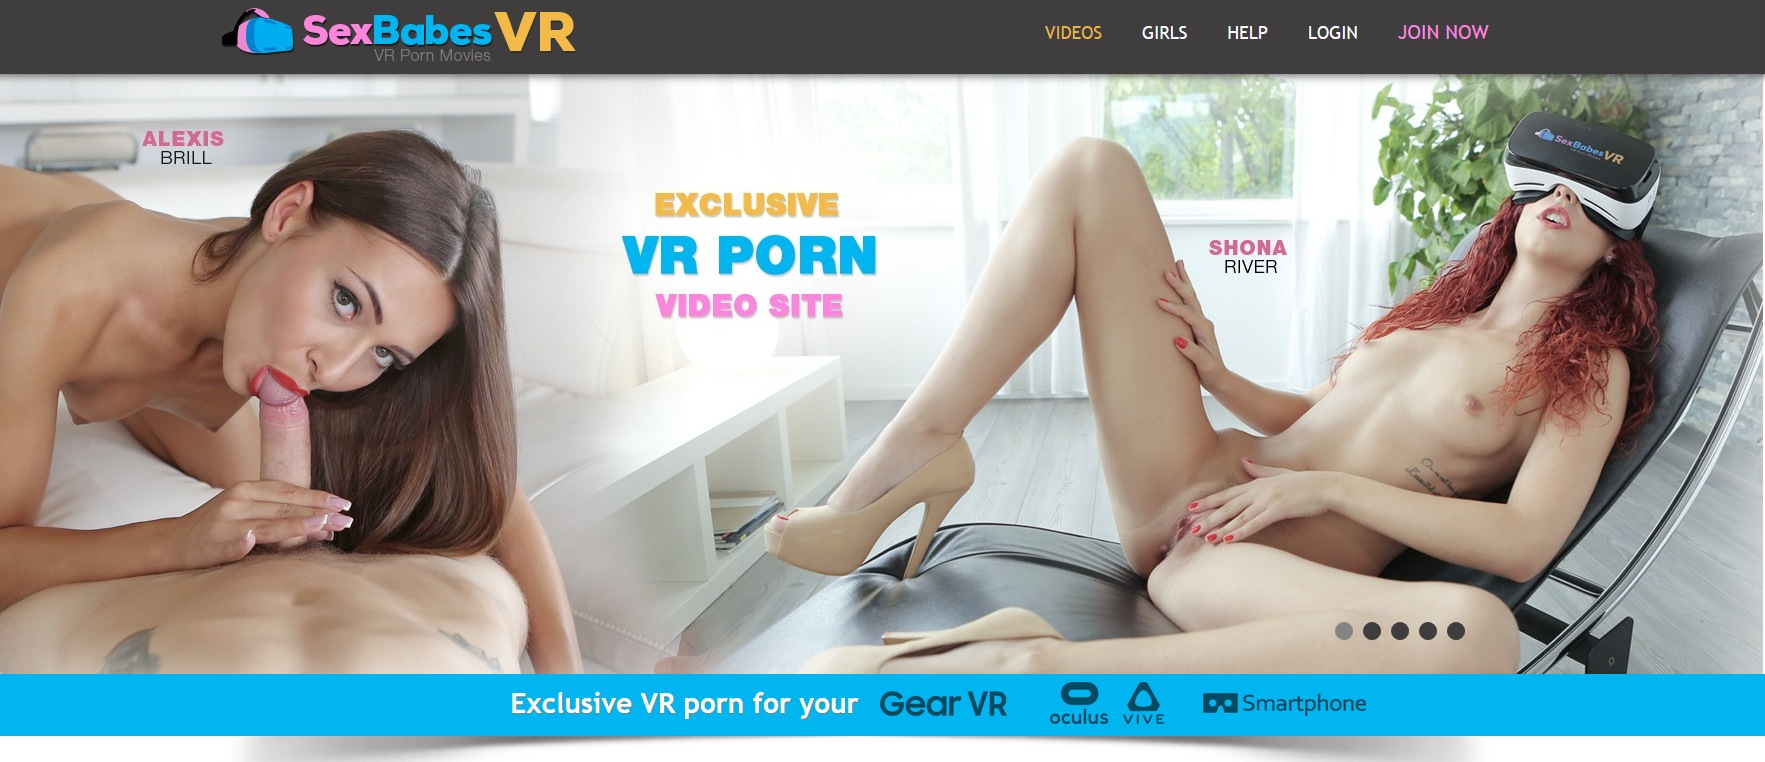 preview image pass  for sexbabesvr.com